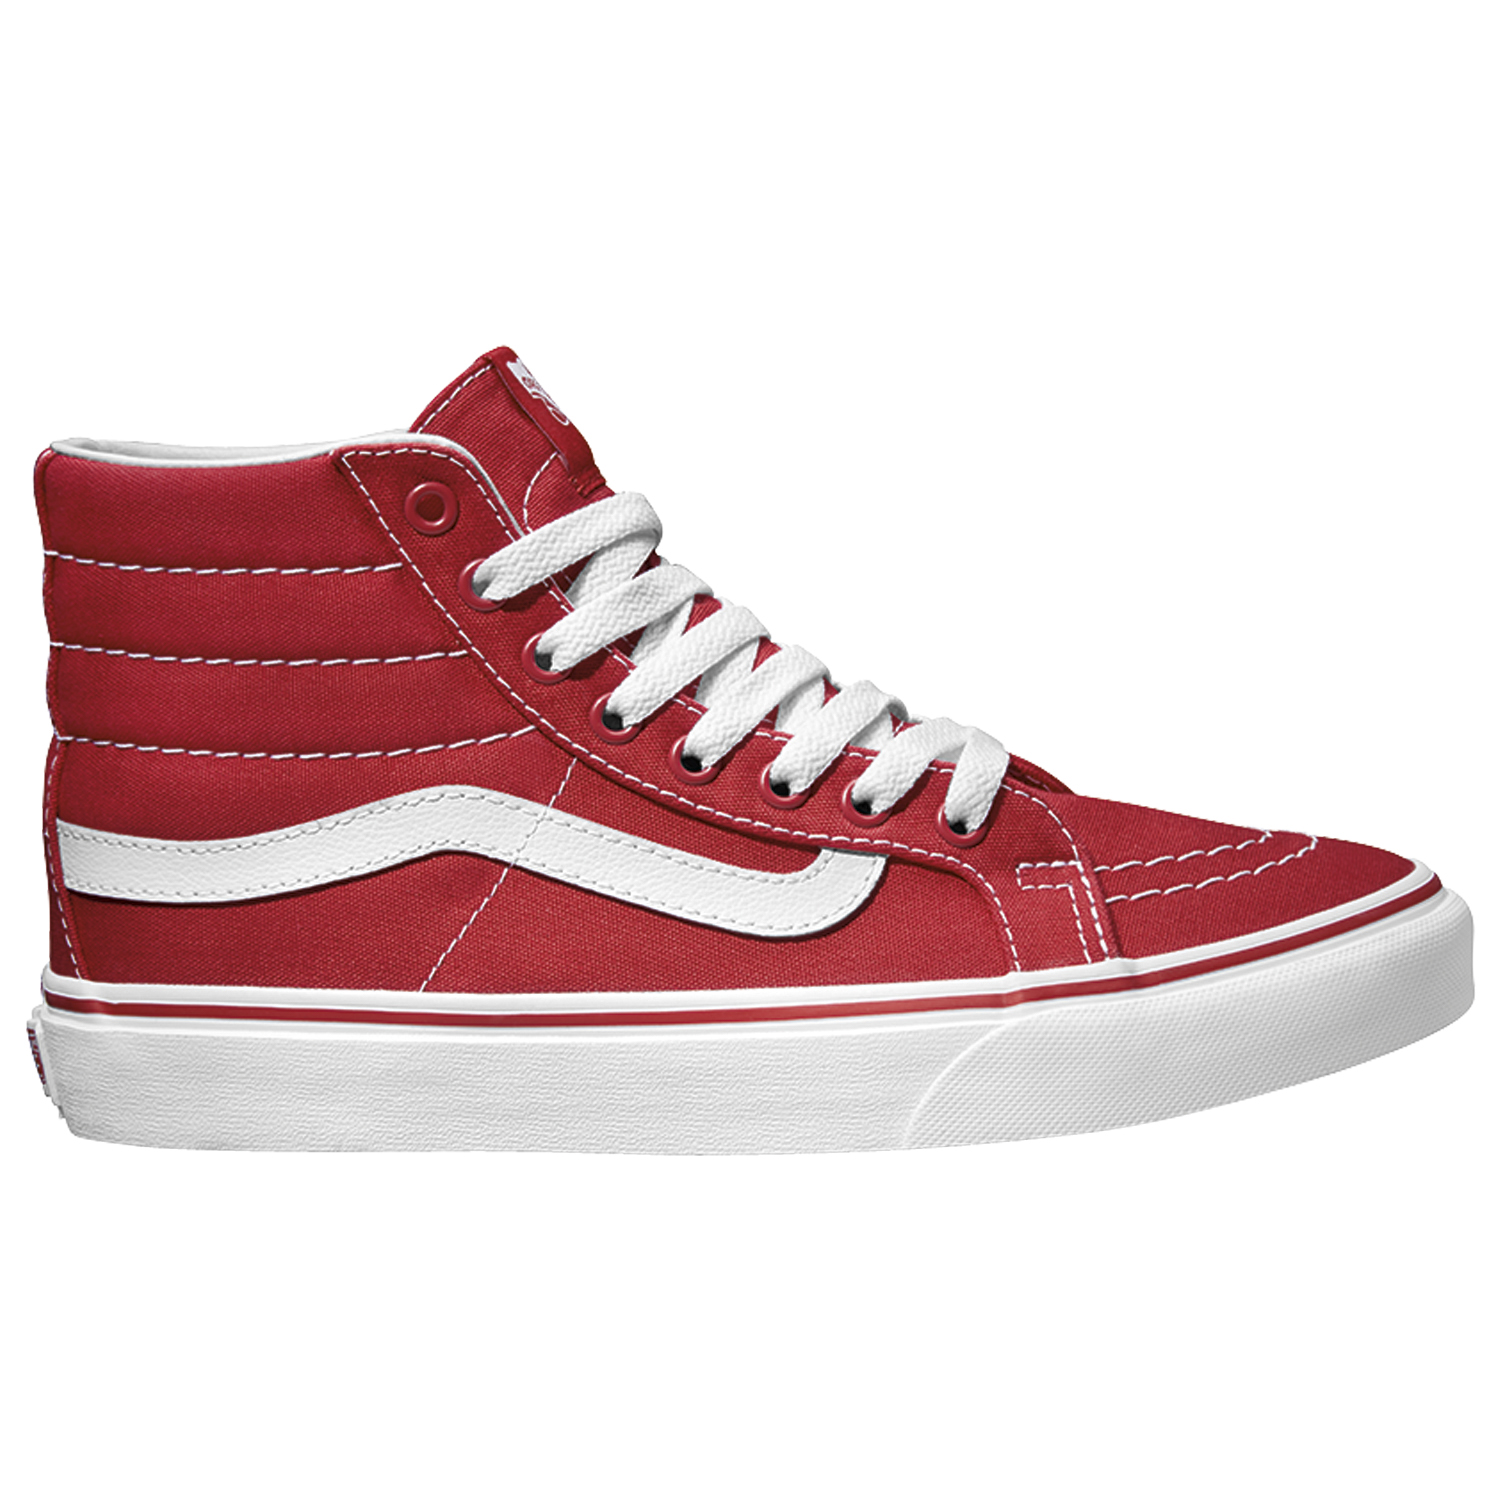 vans-sk8-hi-slim-racing-red-true-white-129-90